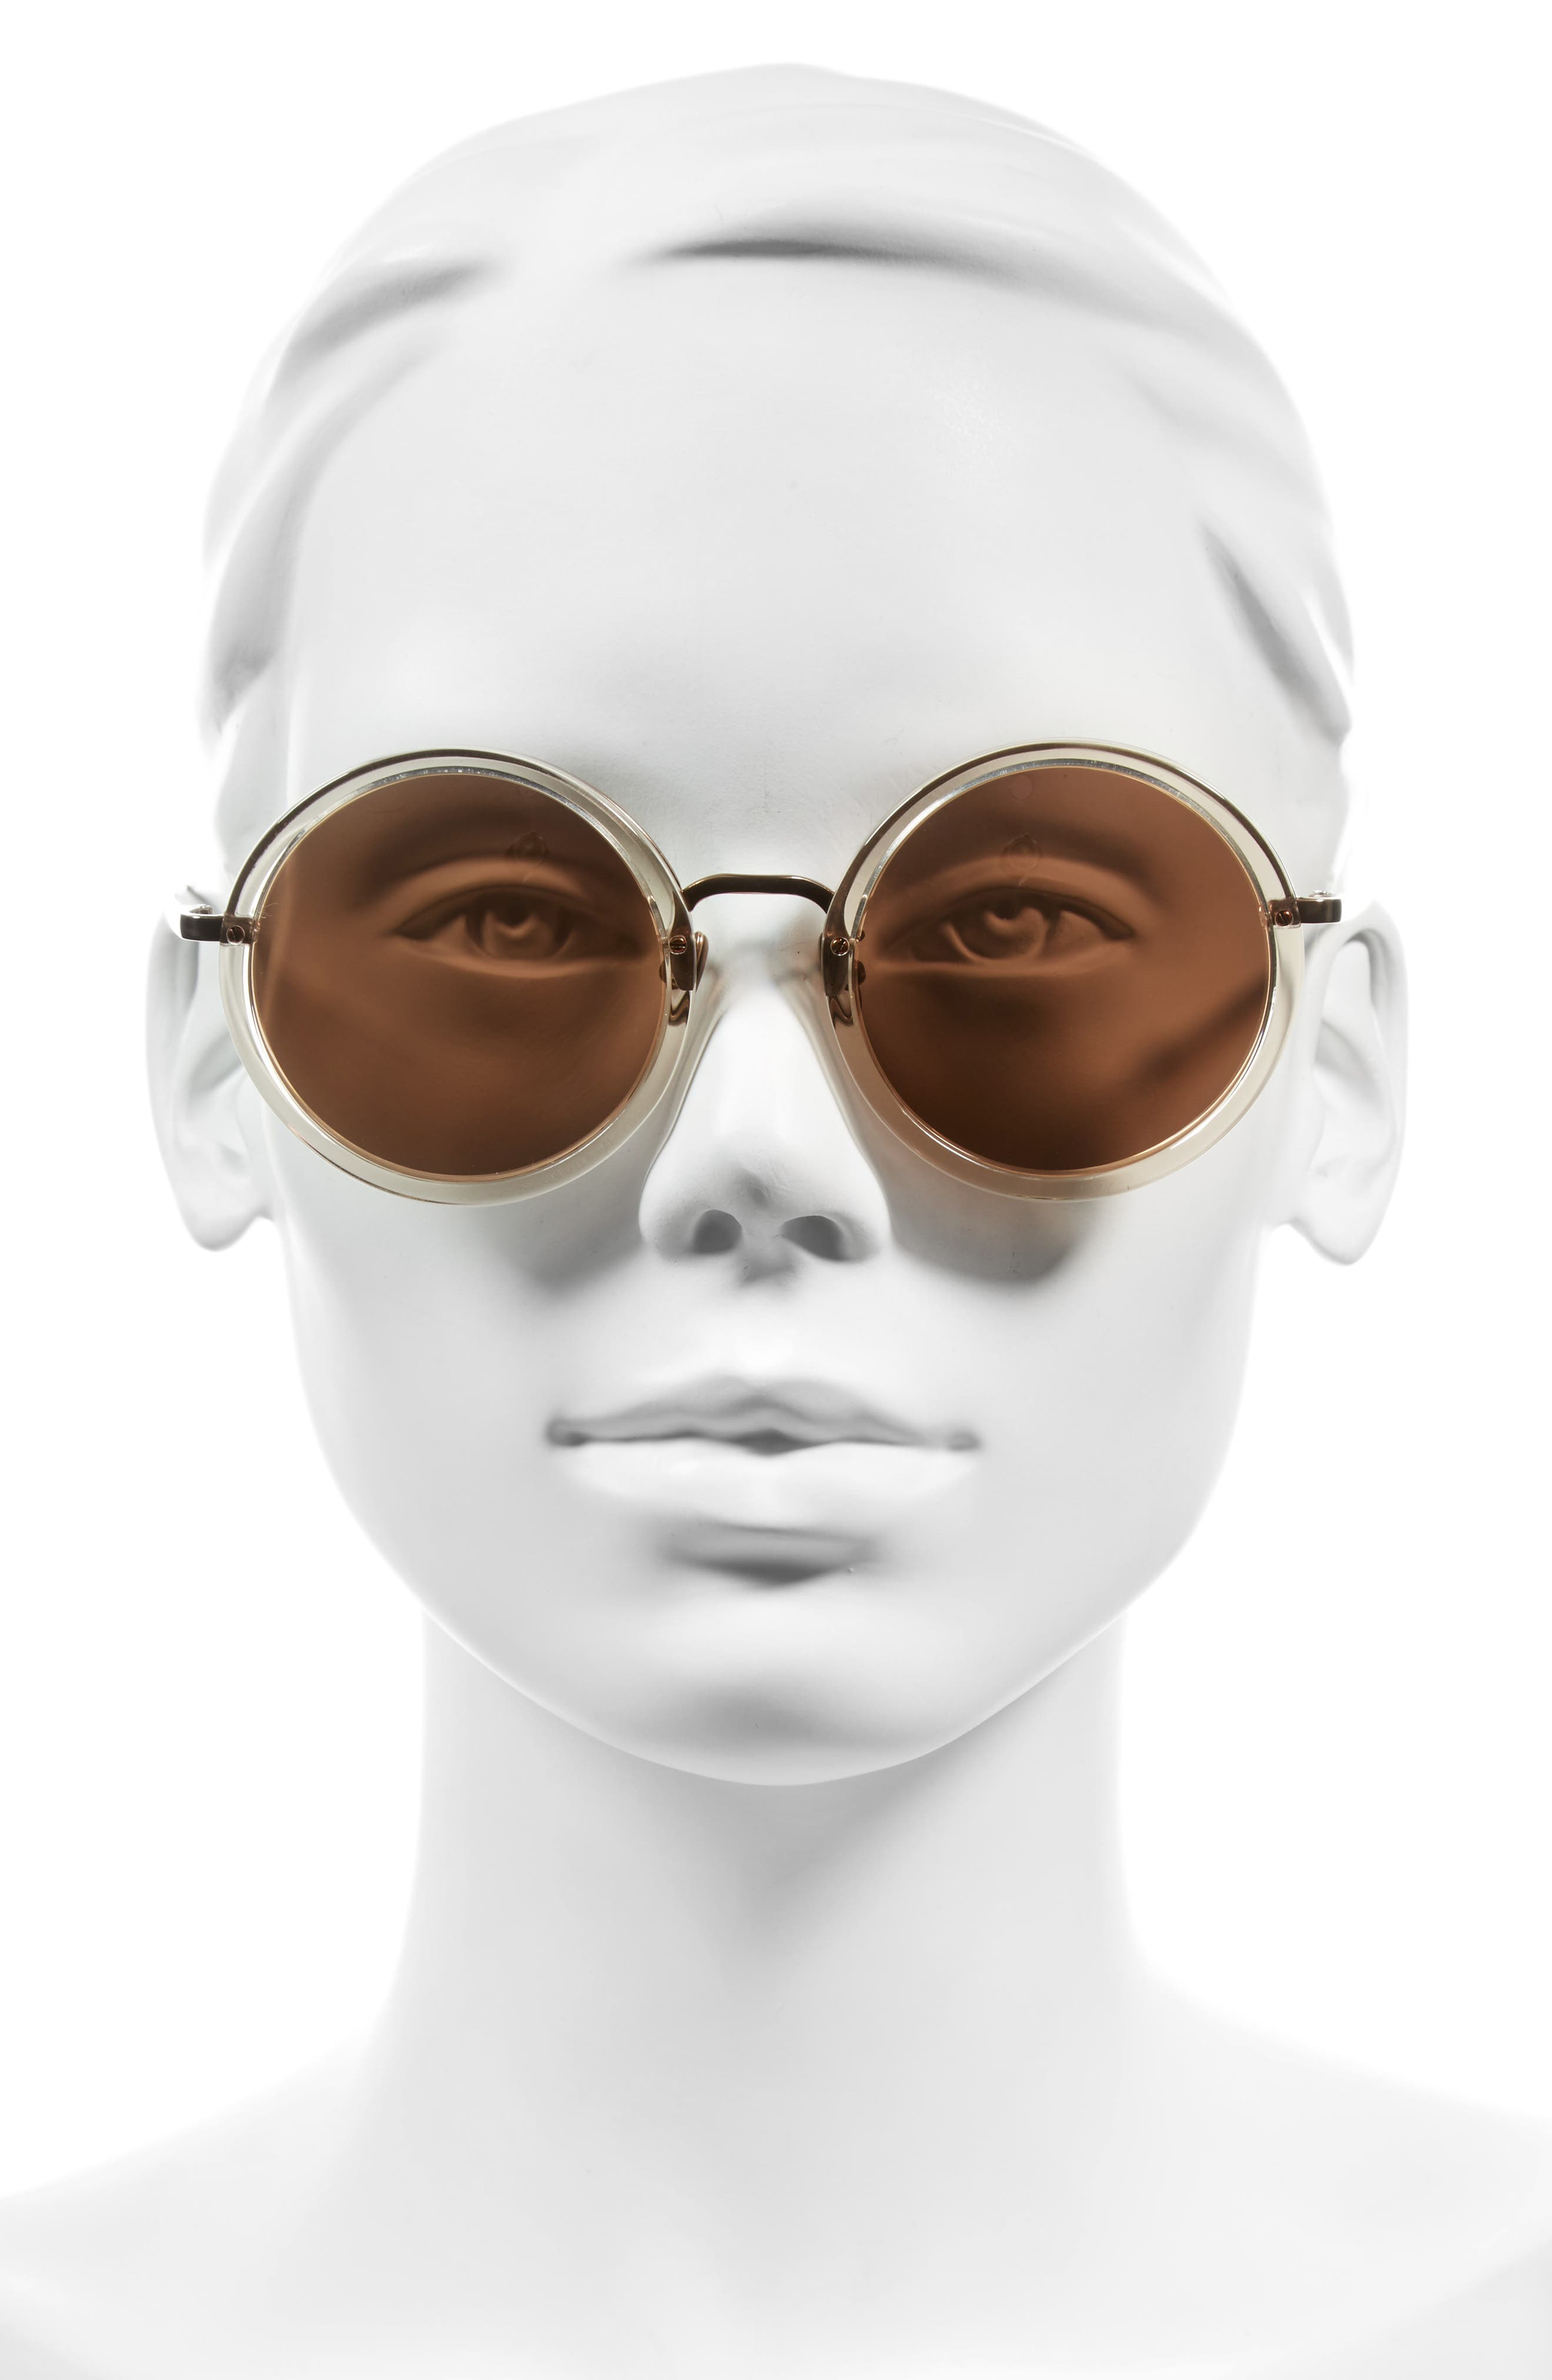 51mm Round Sunglasses,                             Alternate thumbnail 2, color,                             Ash/ Rose Gold